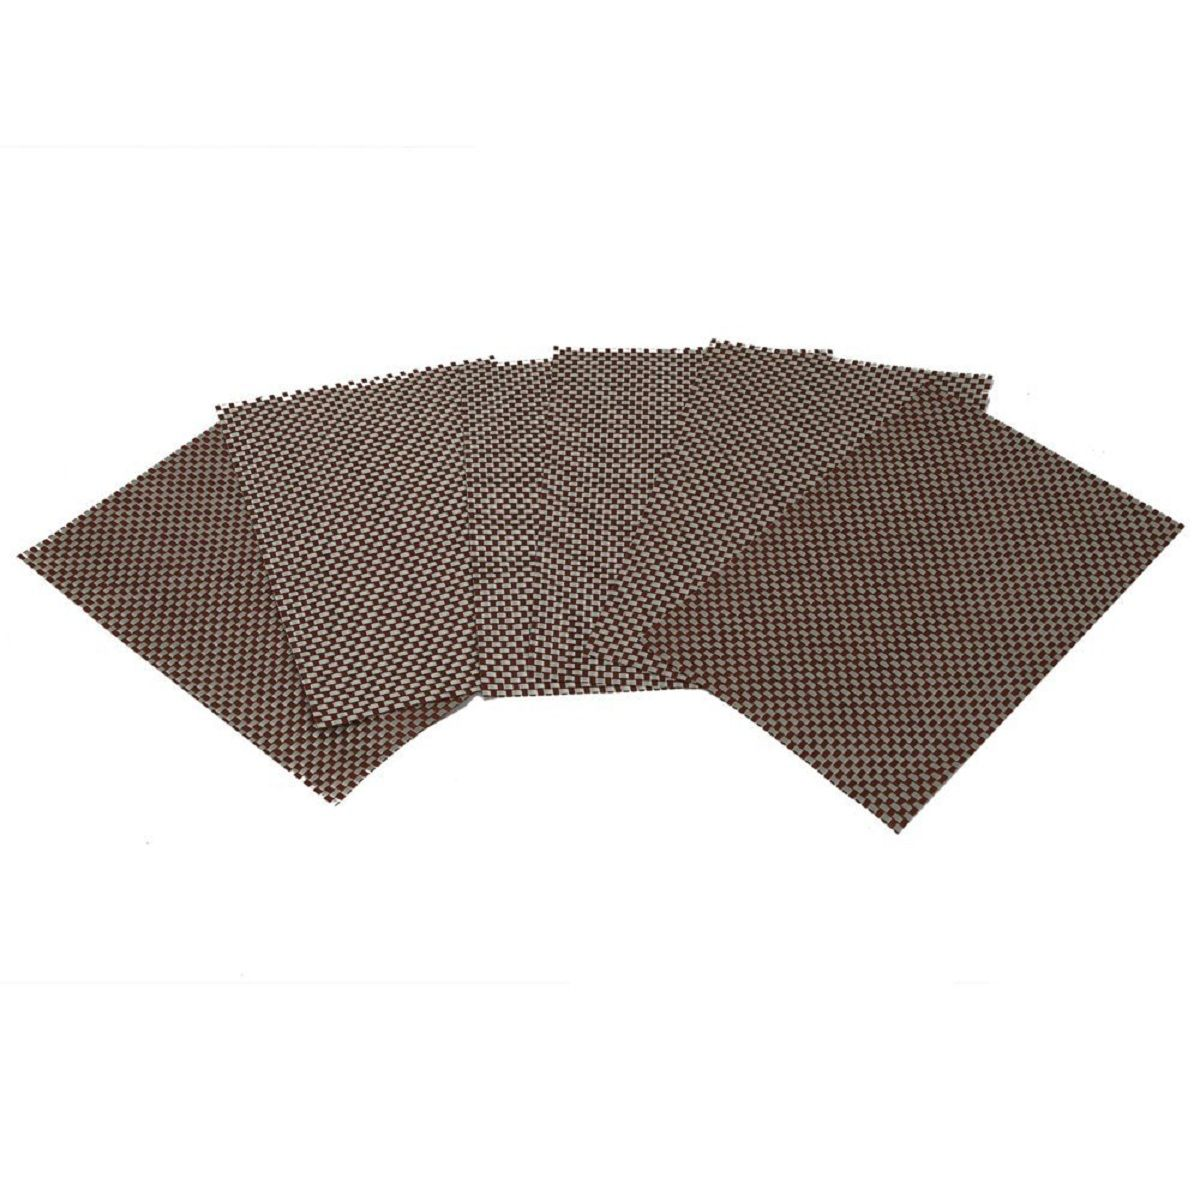 Kuber Industries™ 6 Piece Dining Table Placemats - Brown (Code-PLWS06)